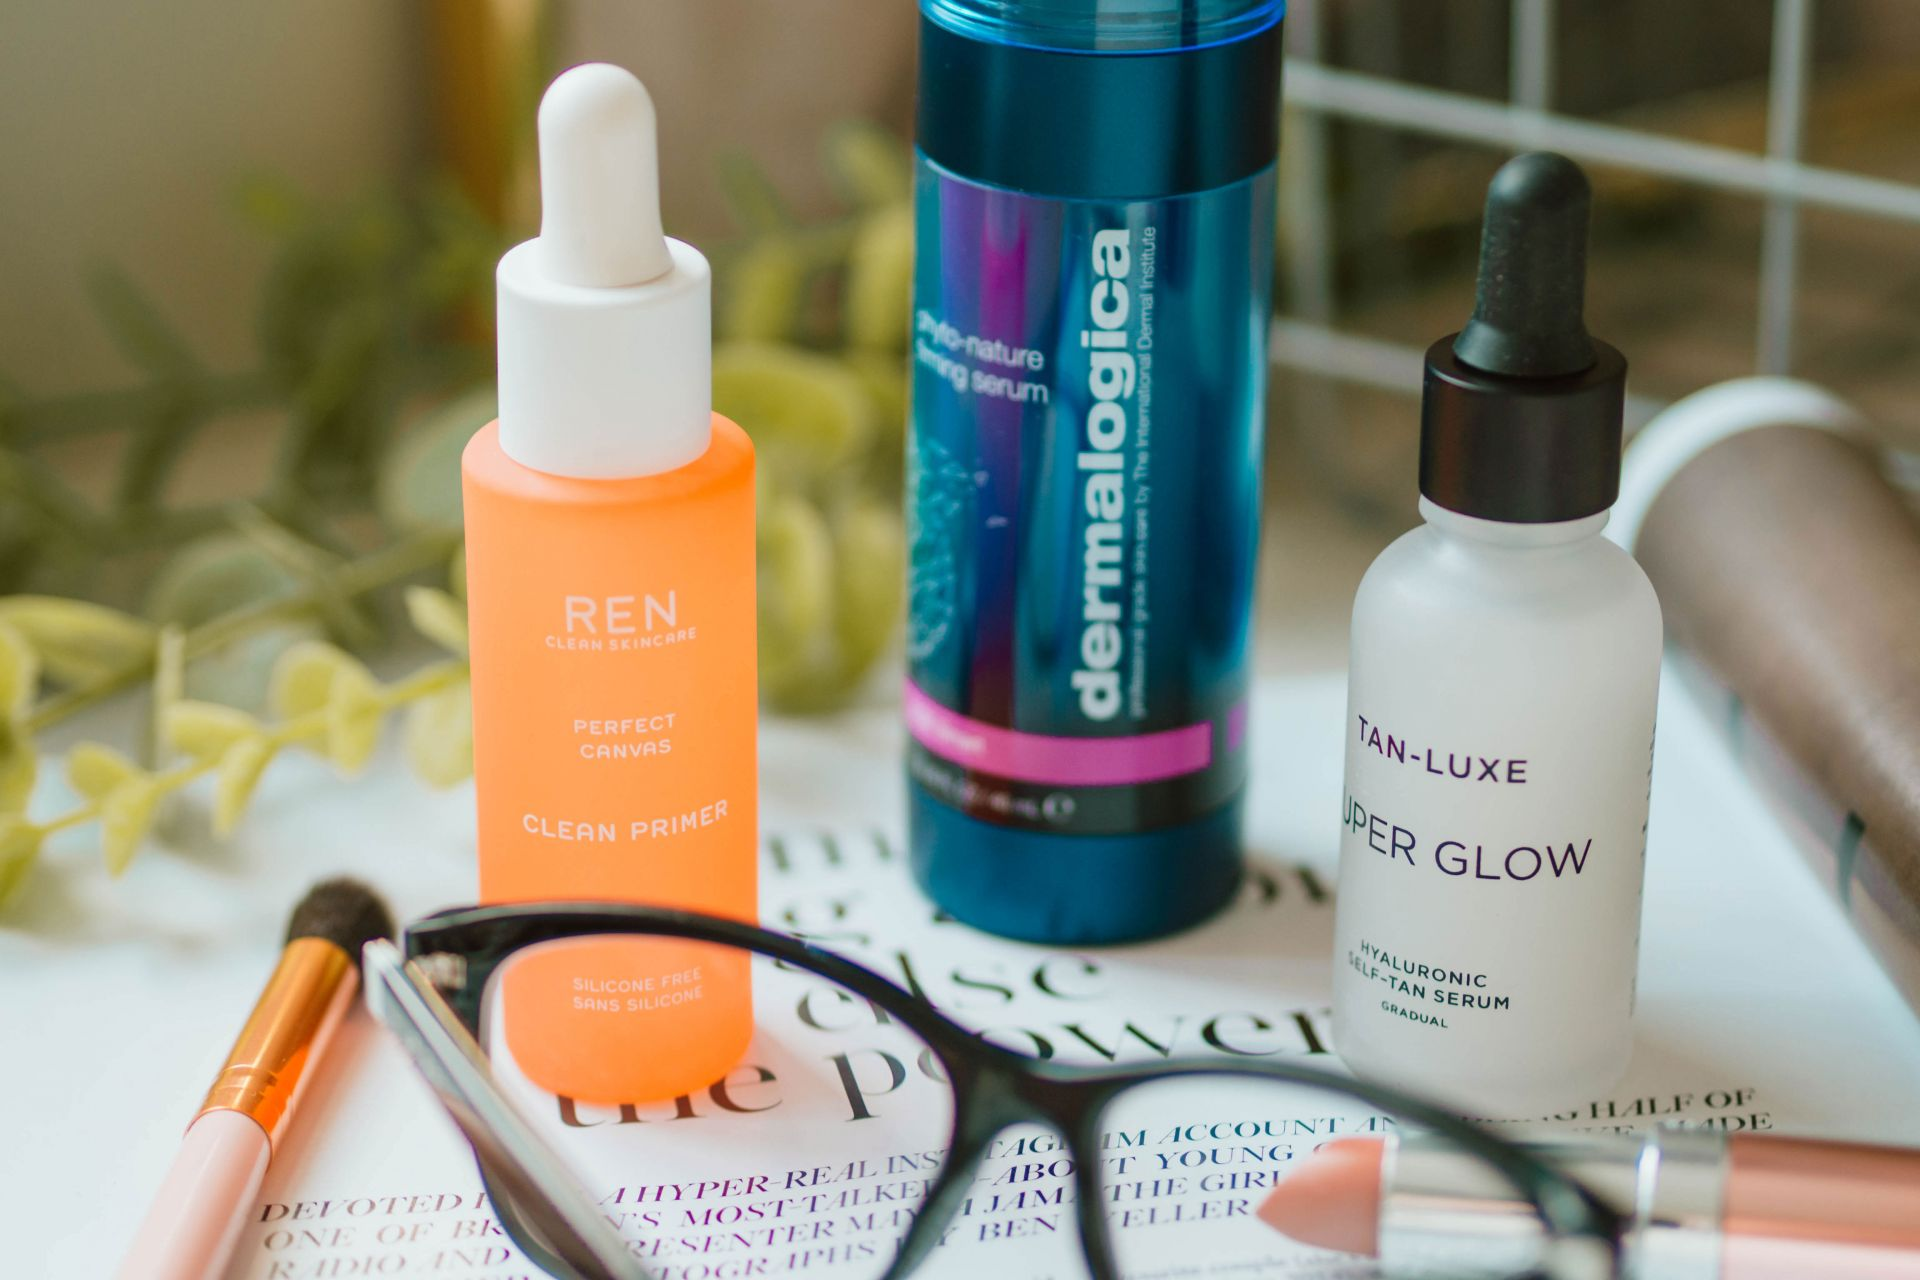 REN Perfect Canvas Clean Primer - winter serums review